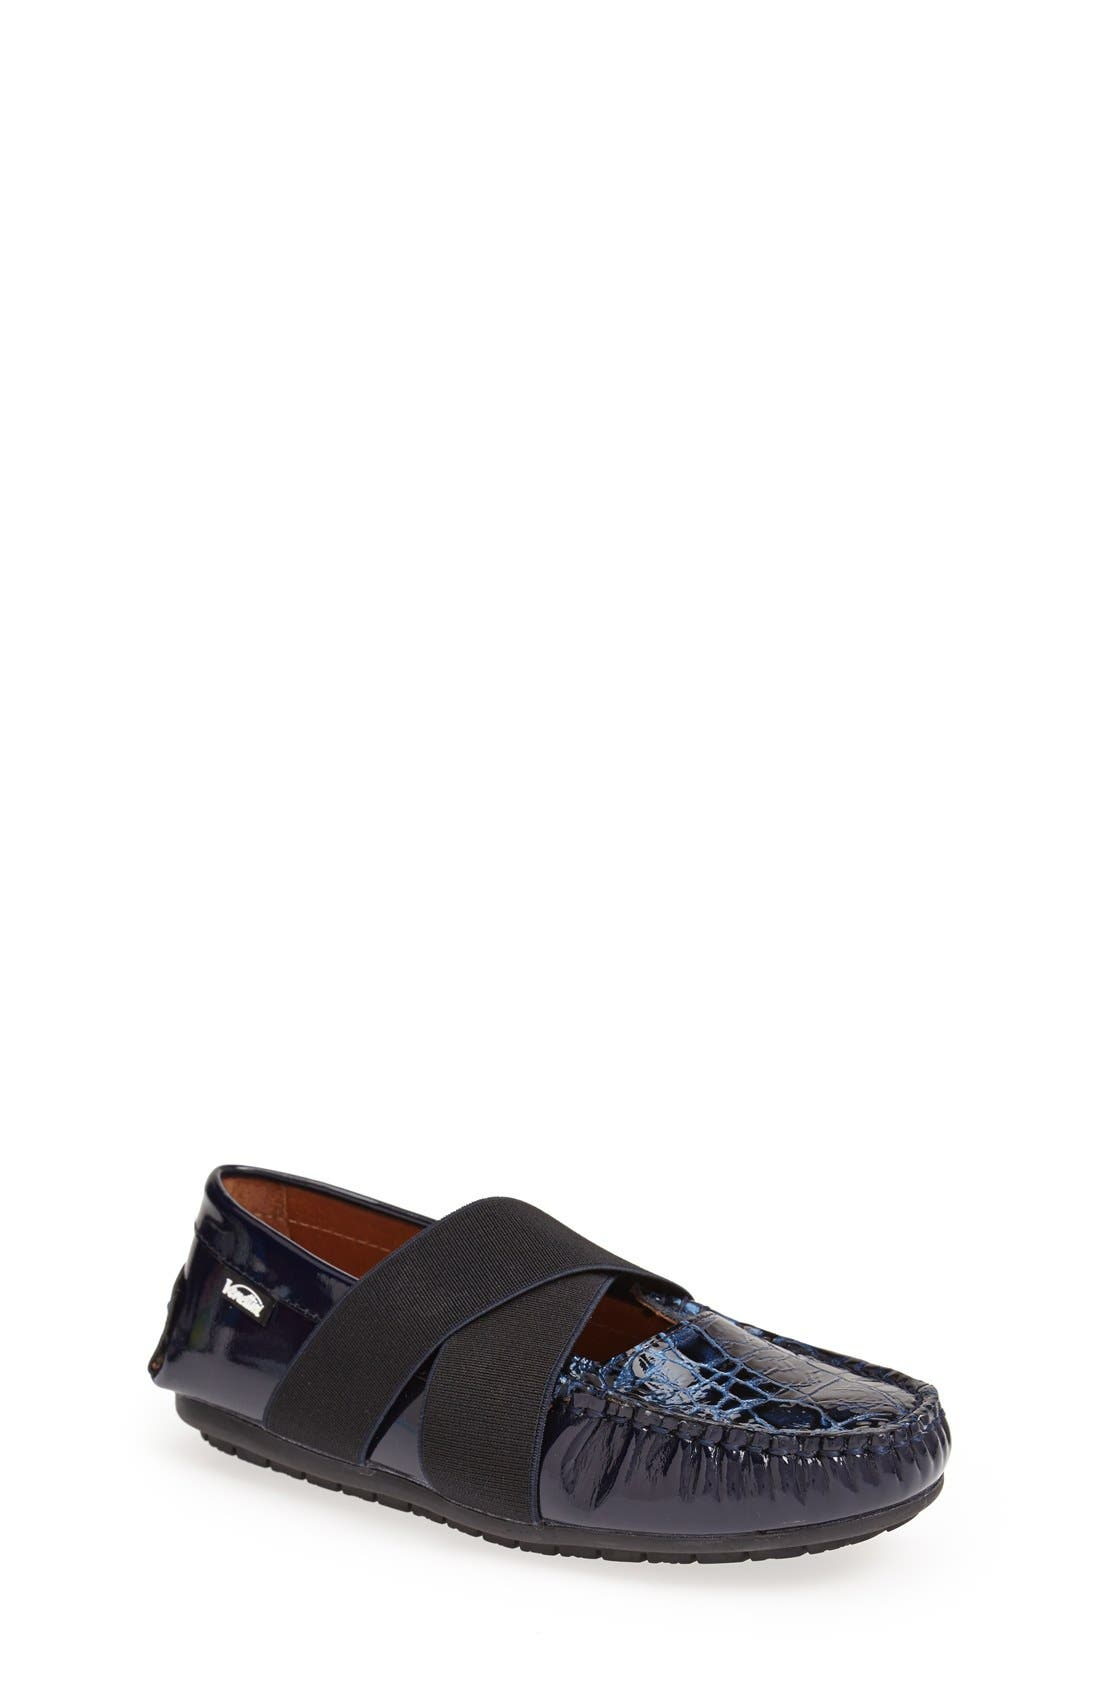 Alternate Image 1 Selected - Venettini 'Daisy' Loafer (Toddler, Little Kid & Big Kid)